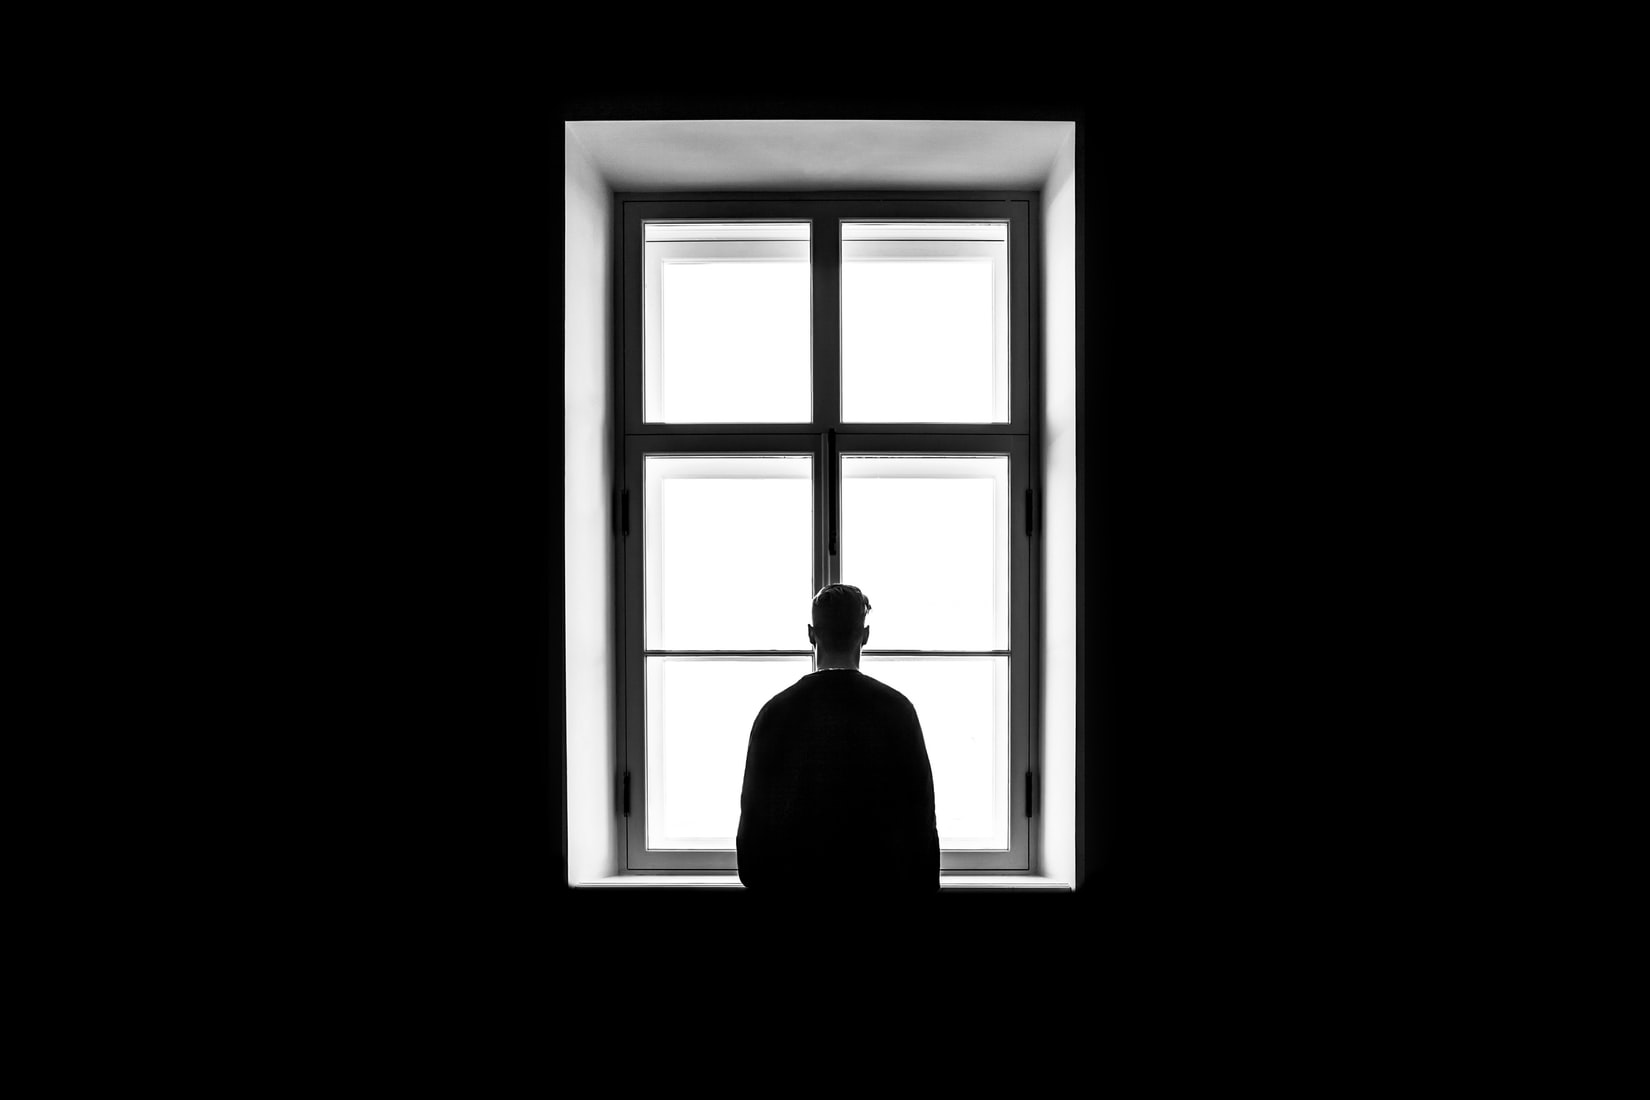 Depressed man standing in front of large window